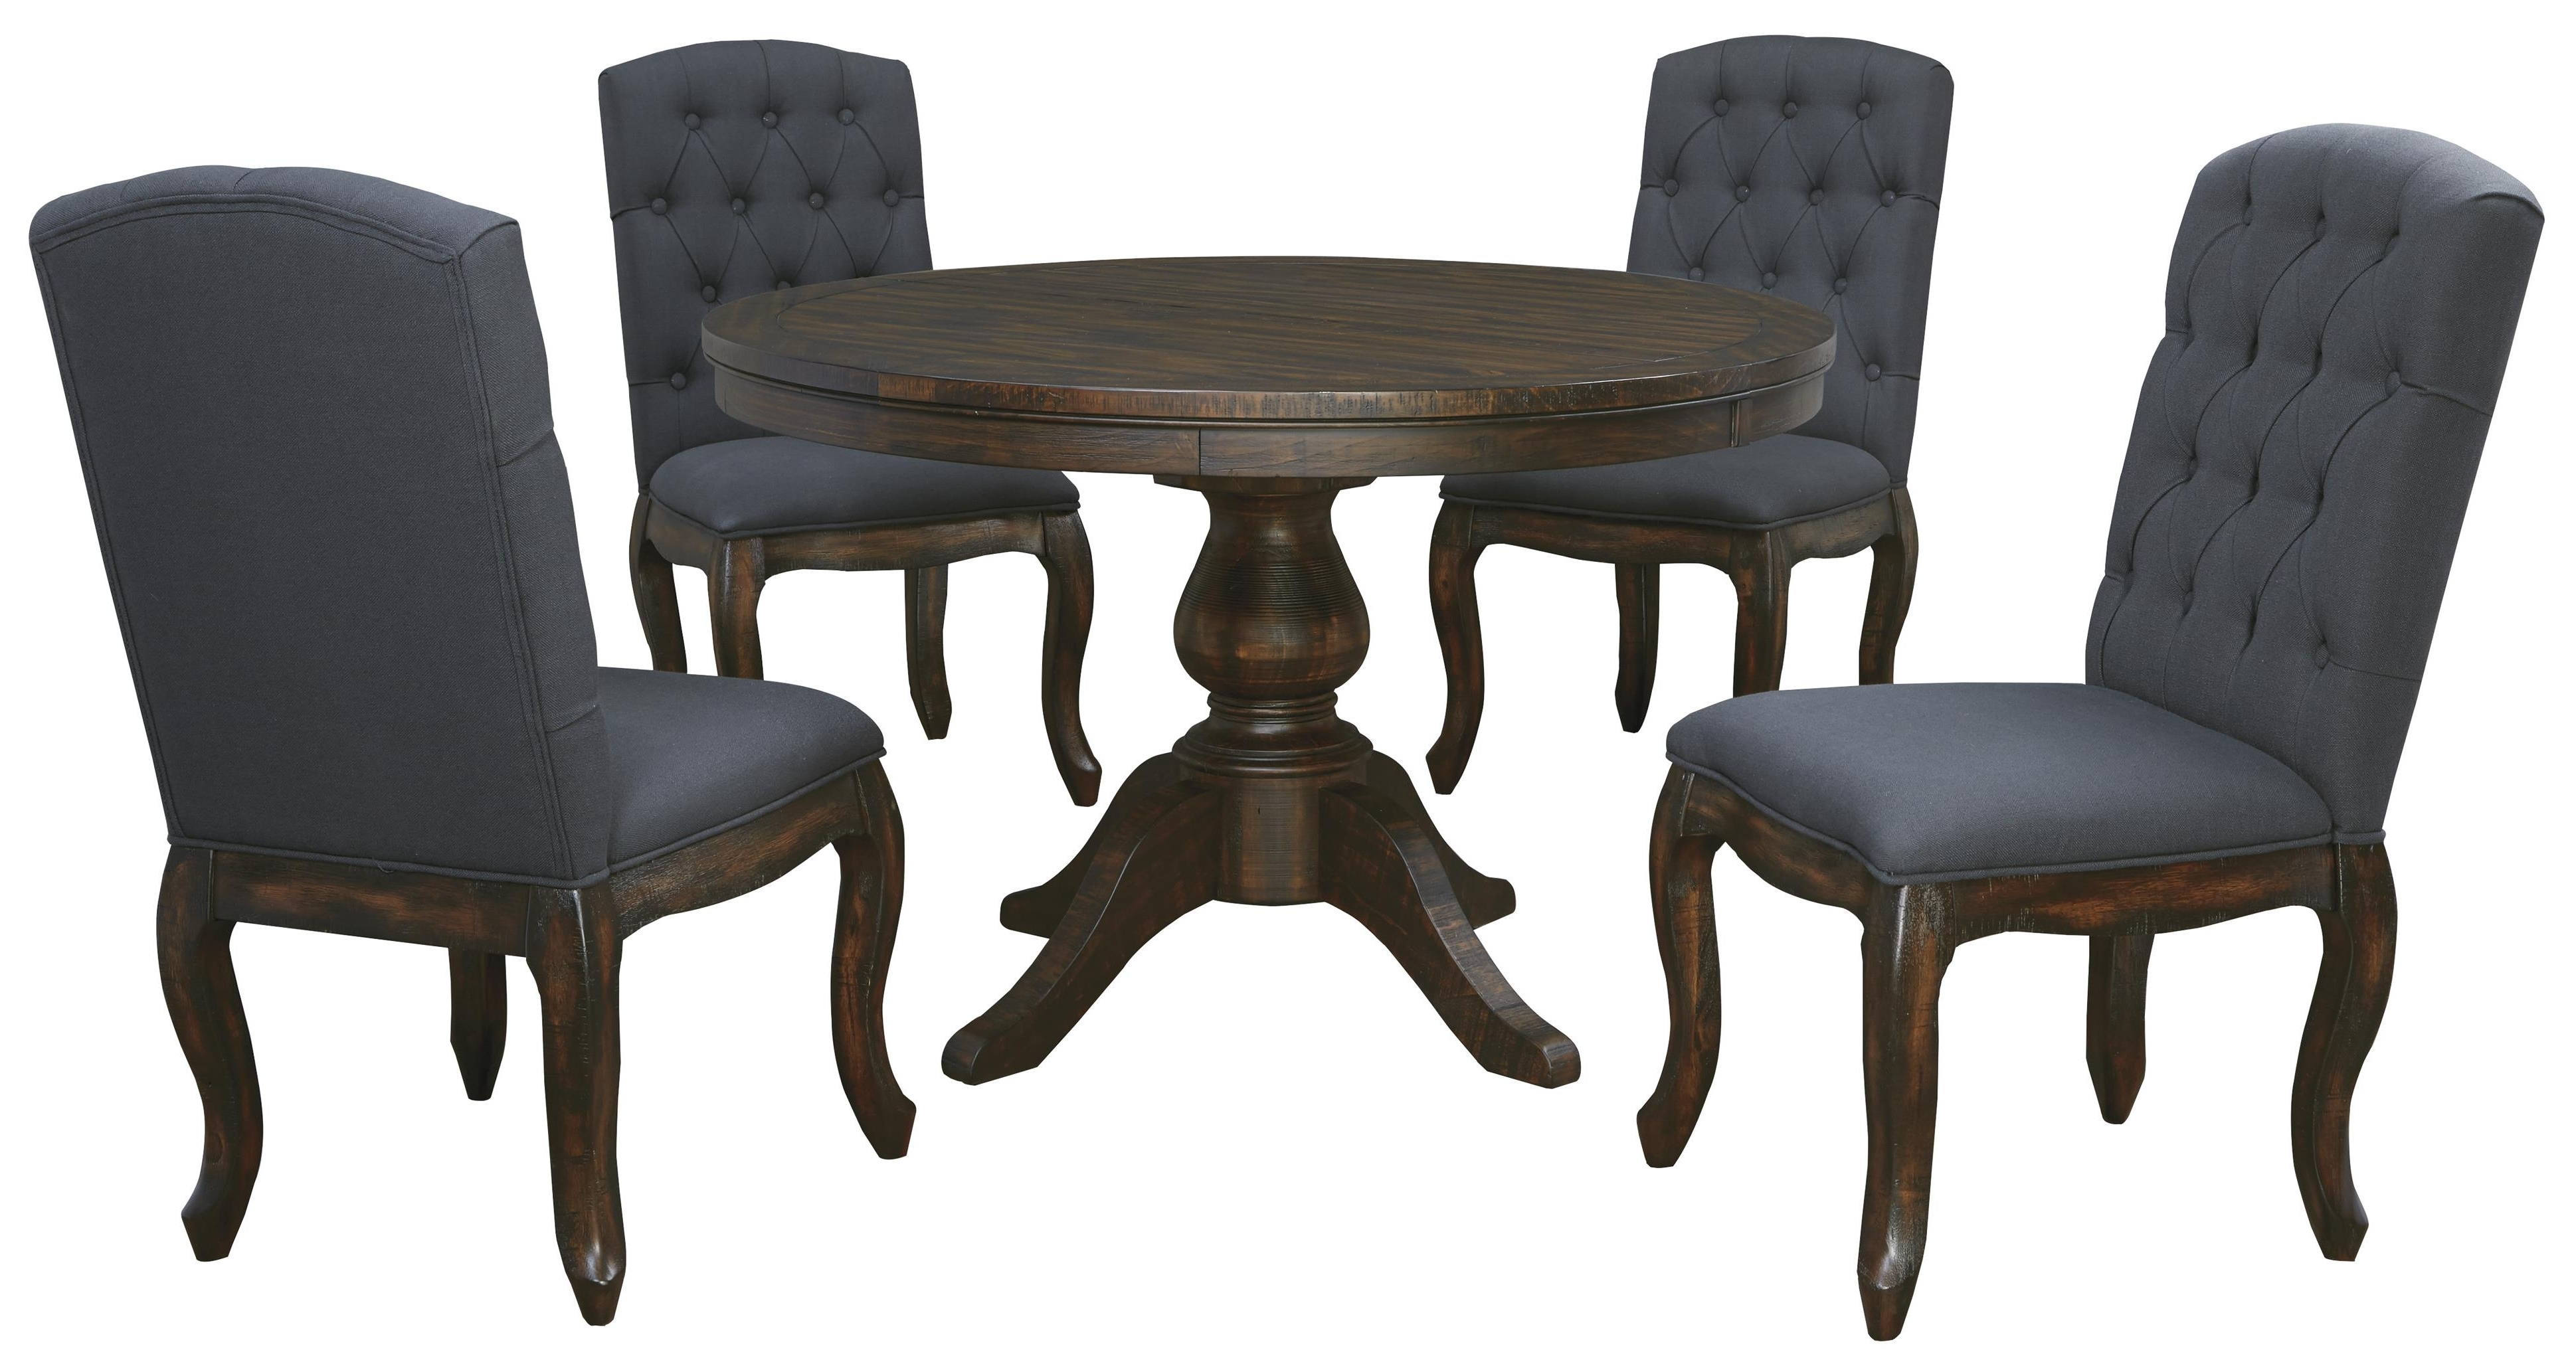 5-Piece Round Dining Table Set With Upholstered Side Chairs within Widely used Craftsman 9 Piece Extension Dining Sets With Uph Side Chairs